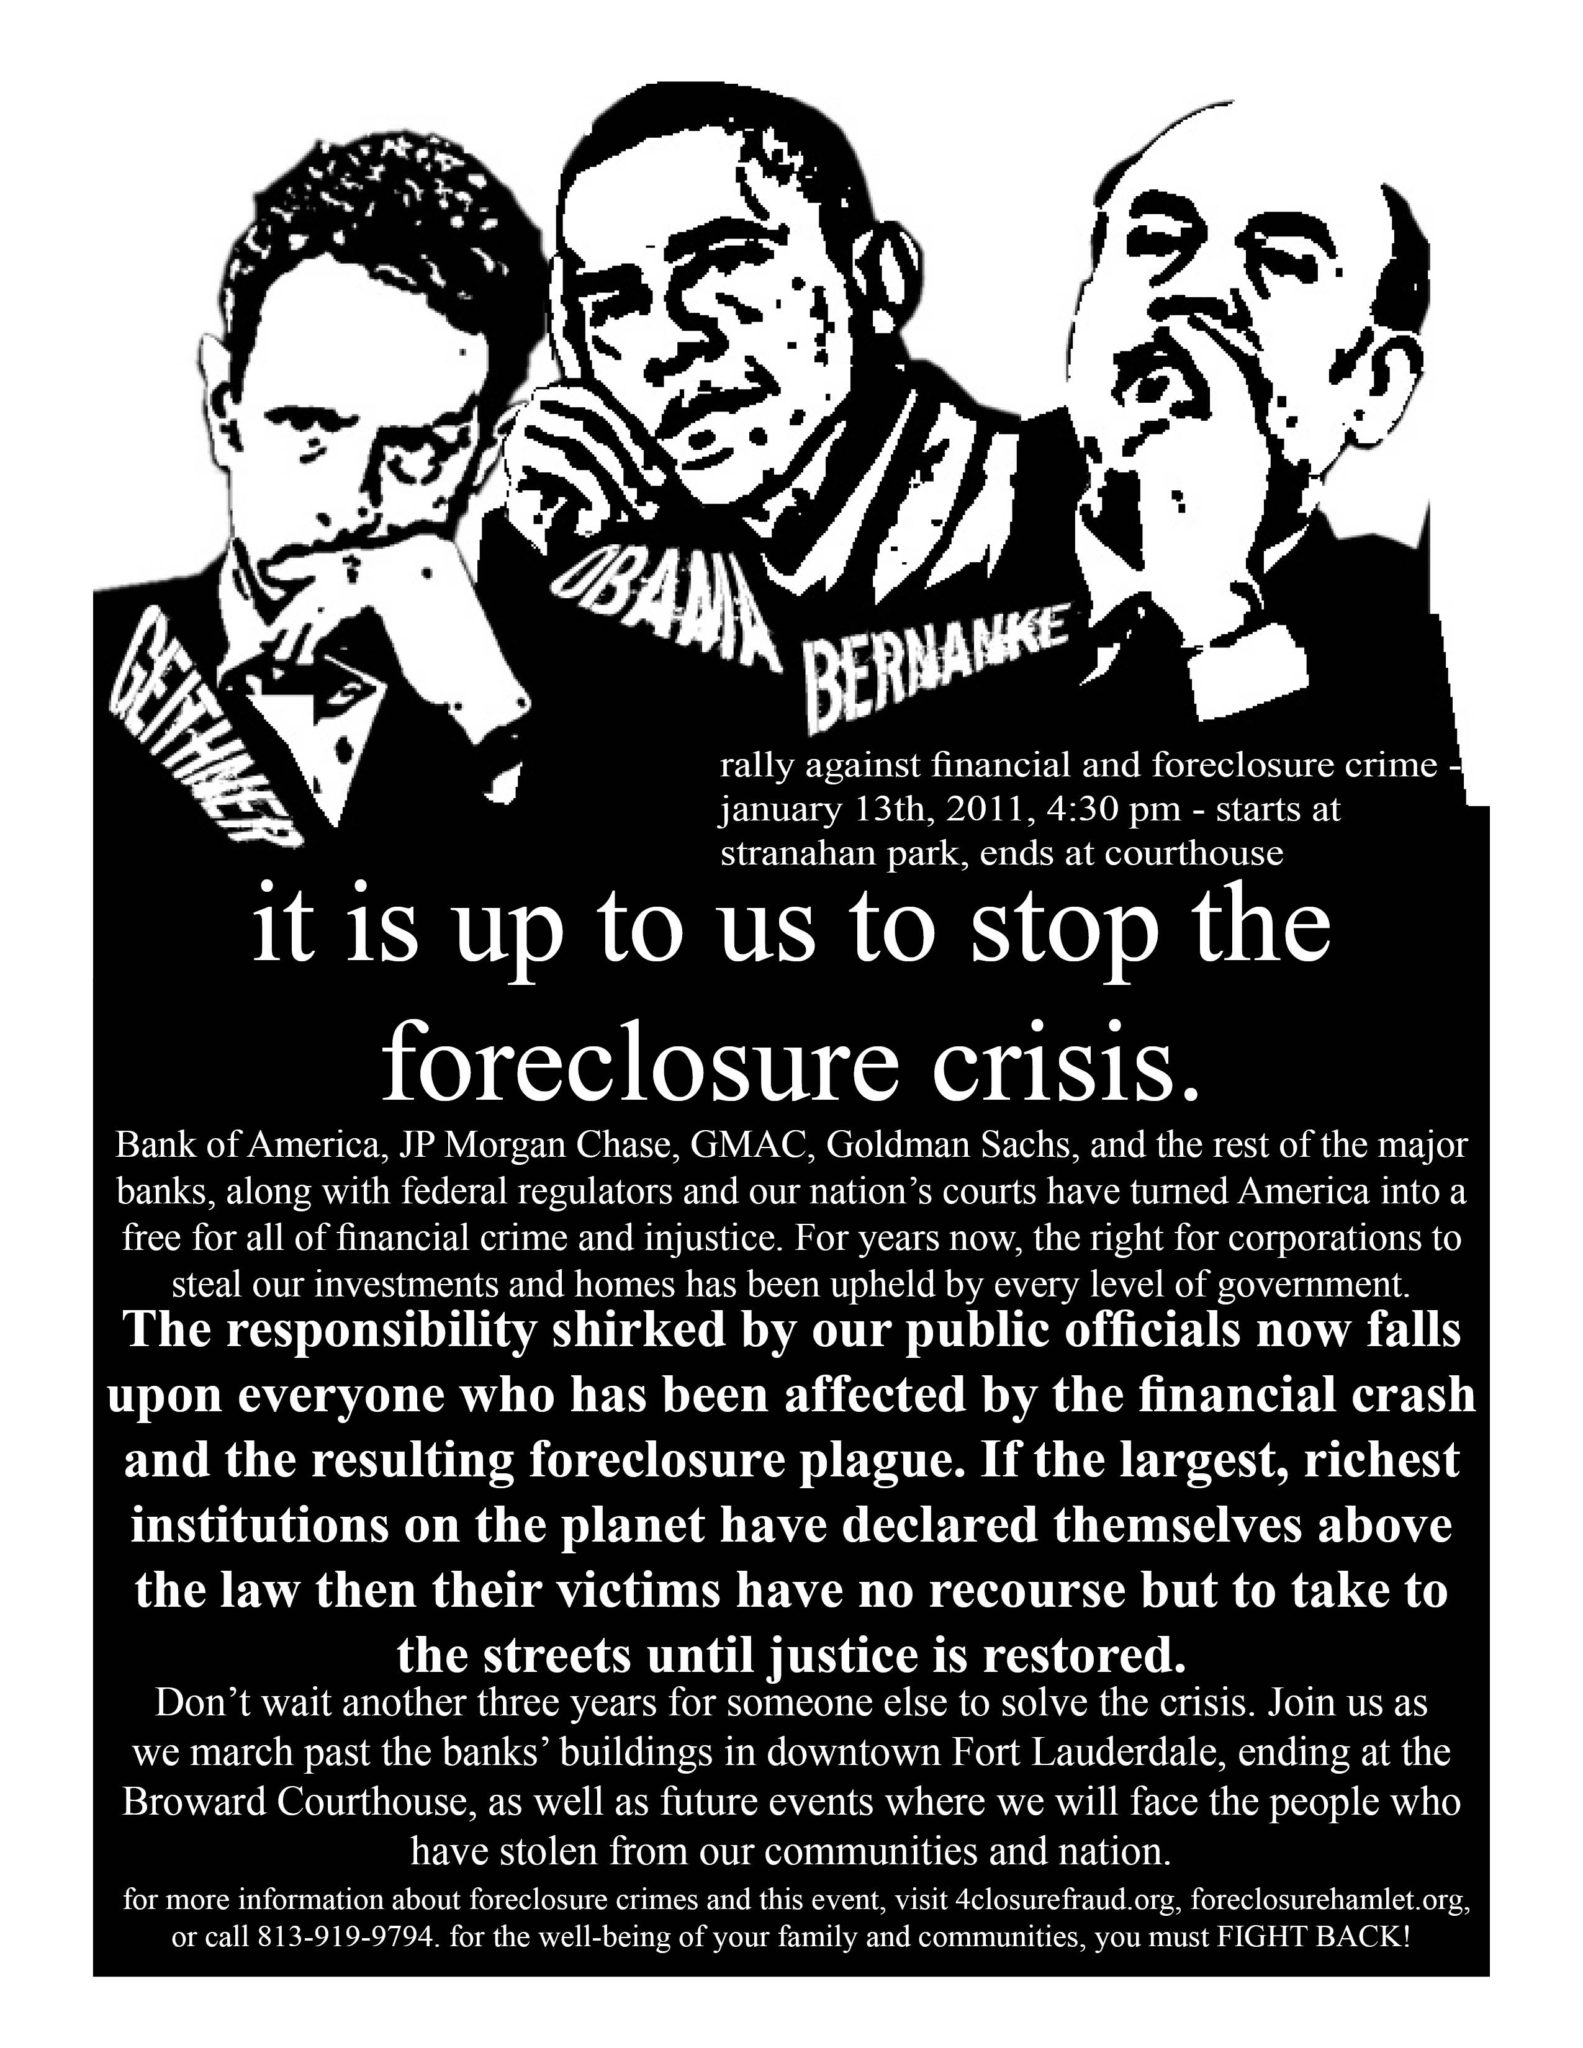 solving the foreclosure crisis the banks essay The subprime mortgage crisis wasn't about subprime mortgages a sign is displayed in front of a foreclosed home on march 12, 2010 in at the time, the press spent a lot of energy scrutinizing subprime borrowers and lenders, based on the fact that in the early days of the crisis, the rate and.